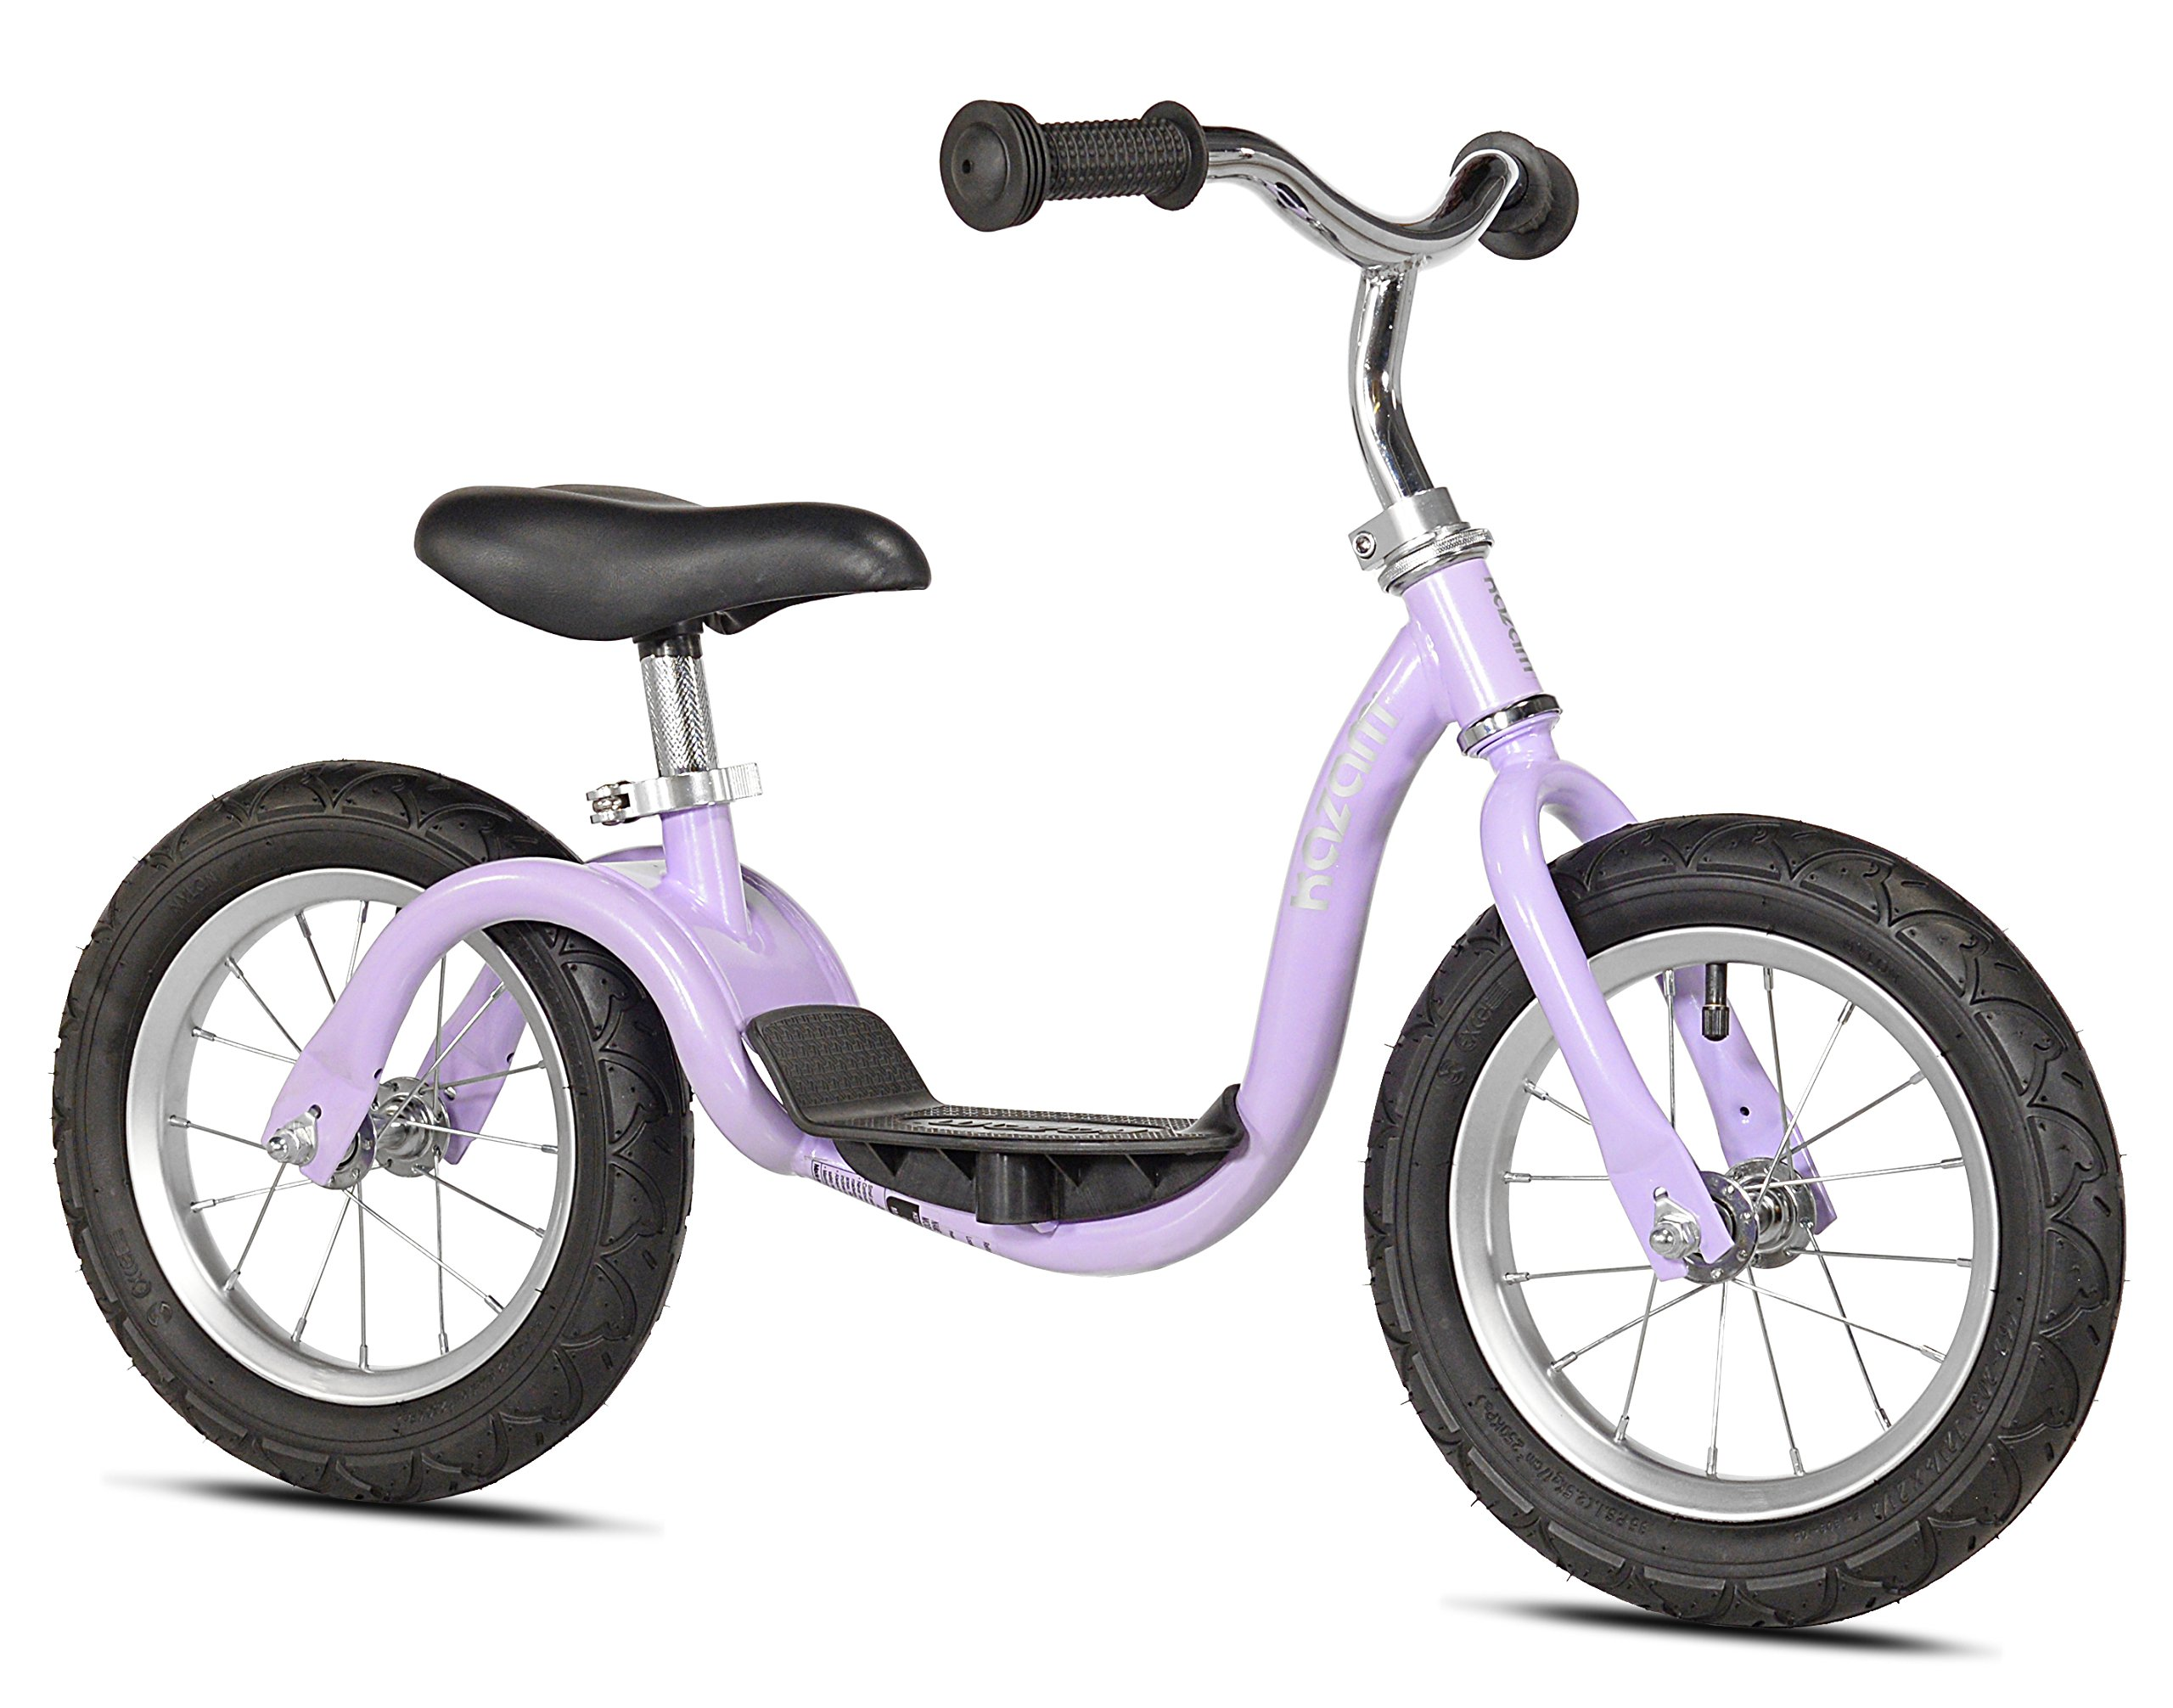 KaZAM v2s No Pedal Balance Bike, 12-Inch, Metallic Purple